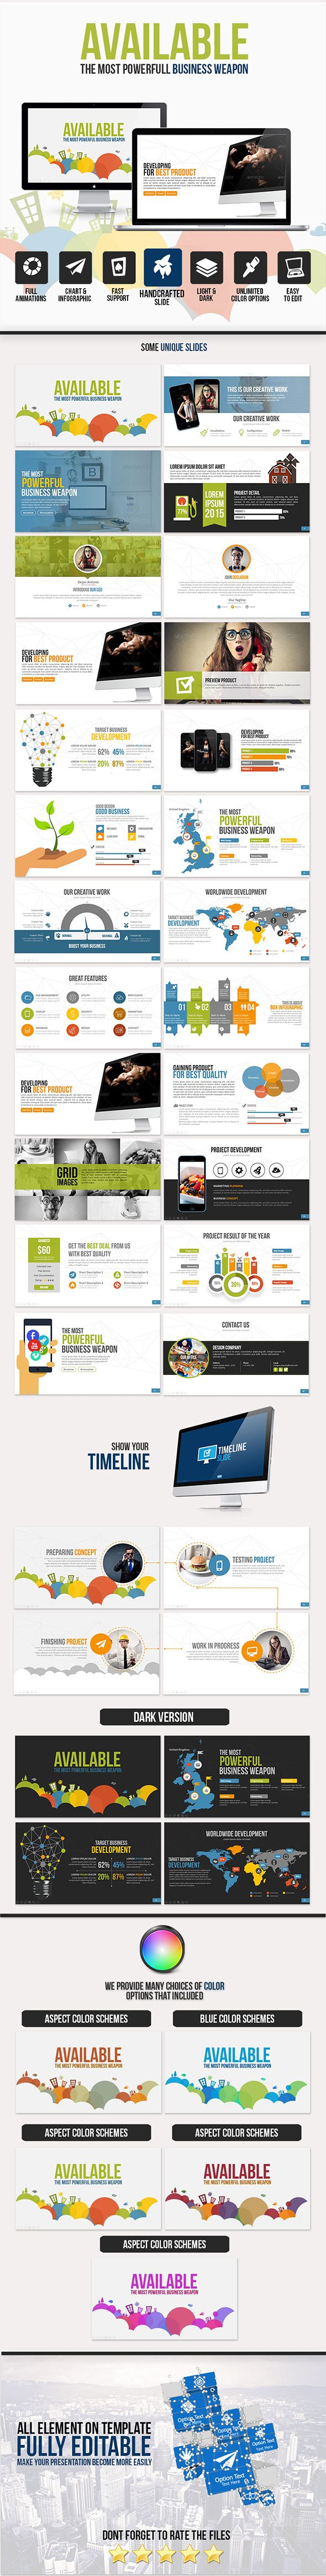 Available PowerPoint Template - Business PowerPoint Templates